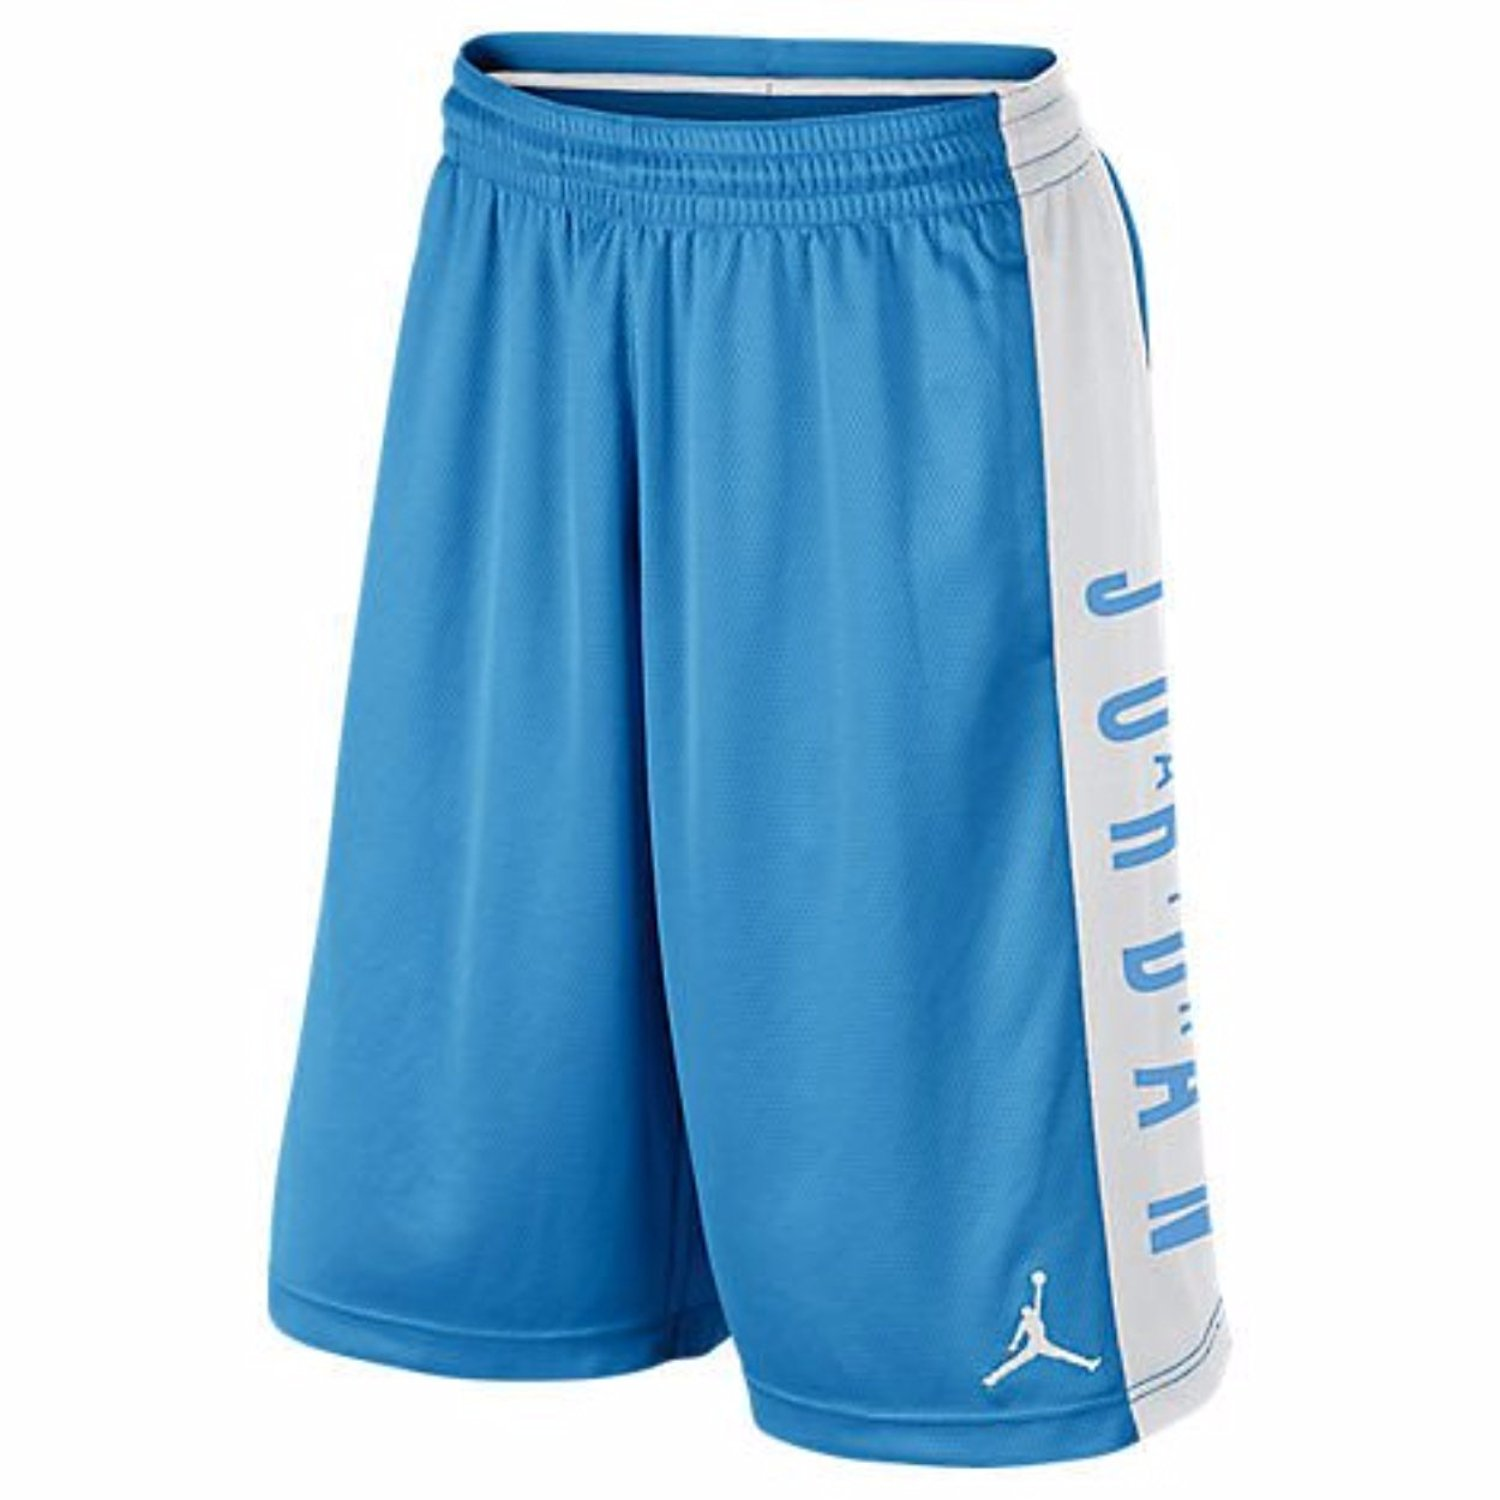 7e1712629638 Get Quotations · Nike Mens Jordan Takeover Basketball Shorts